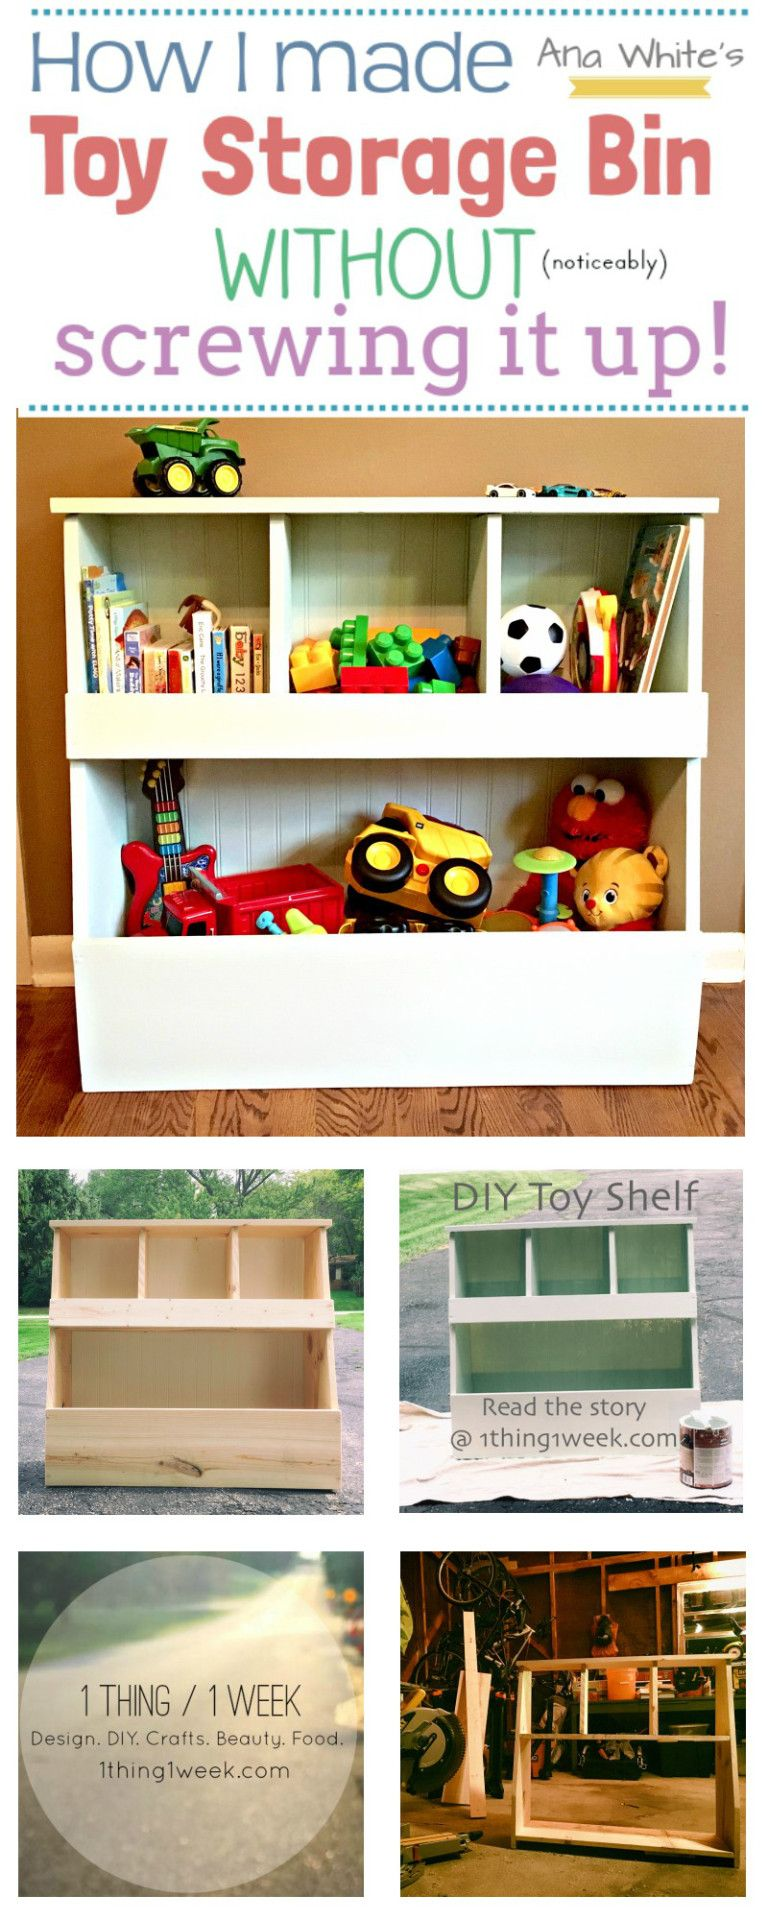 The Challenge: To Build A Toy Storage Bin For Lucasu0027s New Big Boy Room.  Heu0027s 2 And He Has TONS Of Toys. My Inspiration: I Heard About Ana White For  The ...